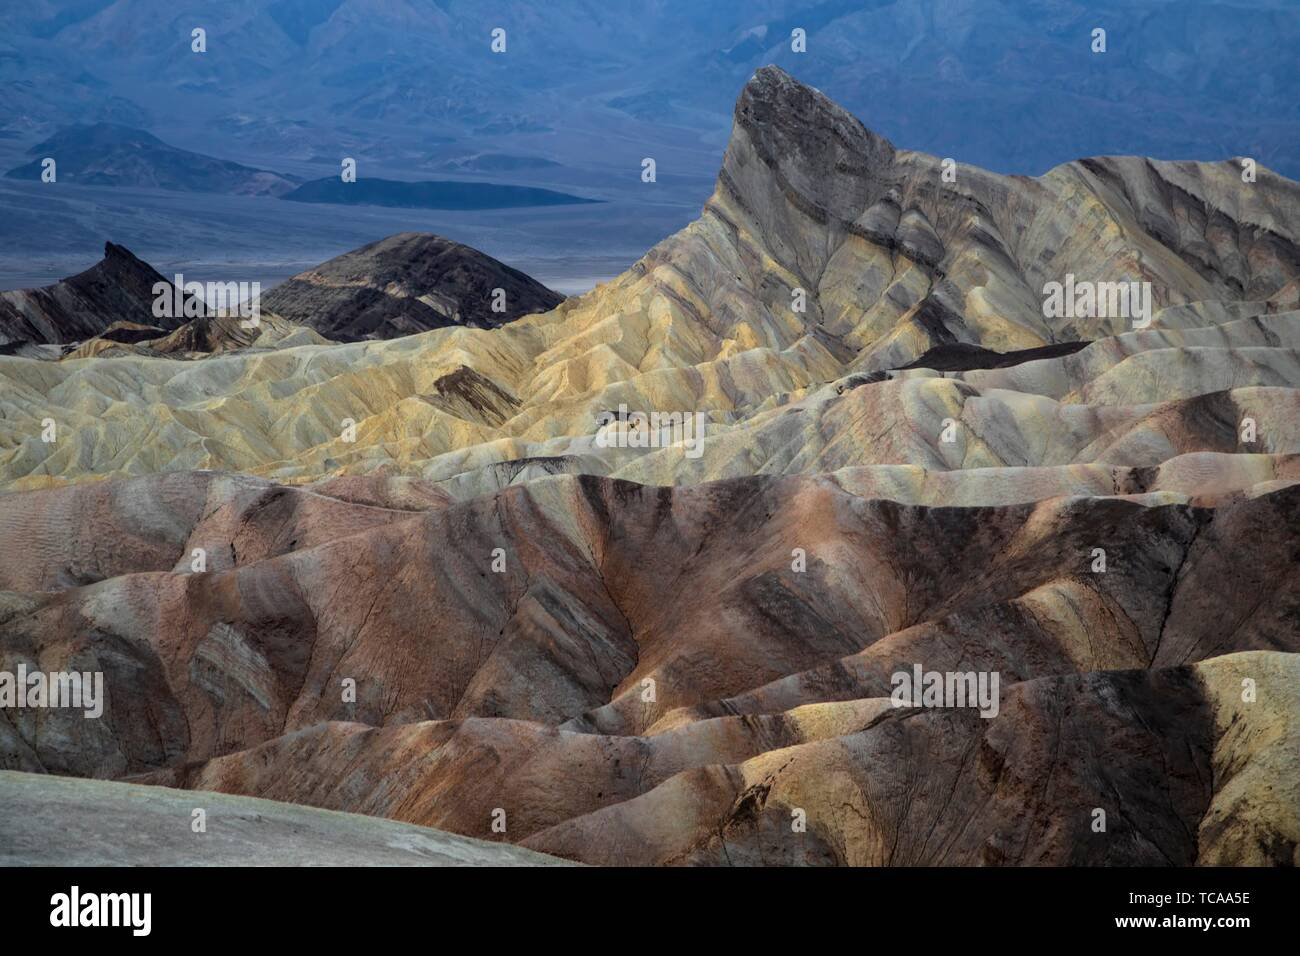 The eroded sandstone rock formations of Zabriske Point at Death Valley National Park, California. Stock Photo